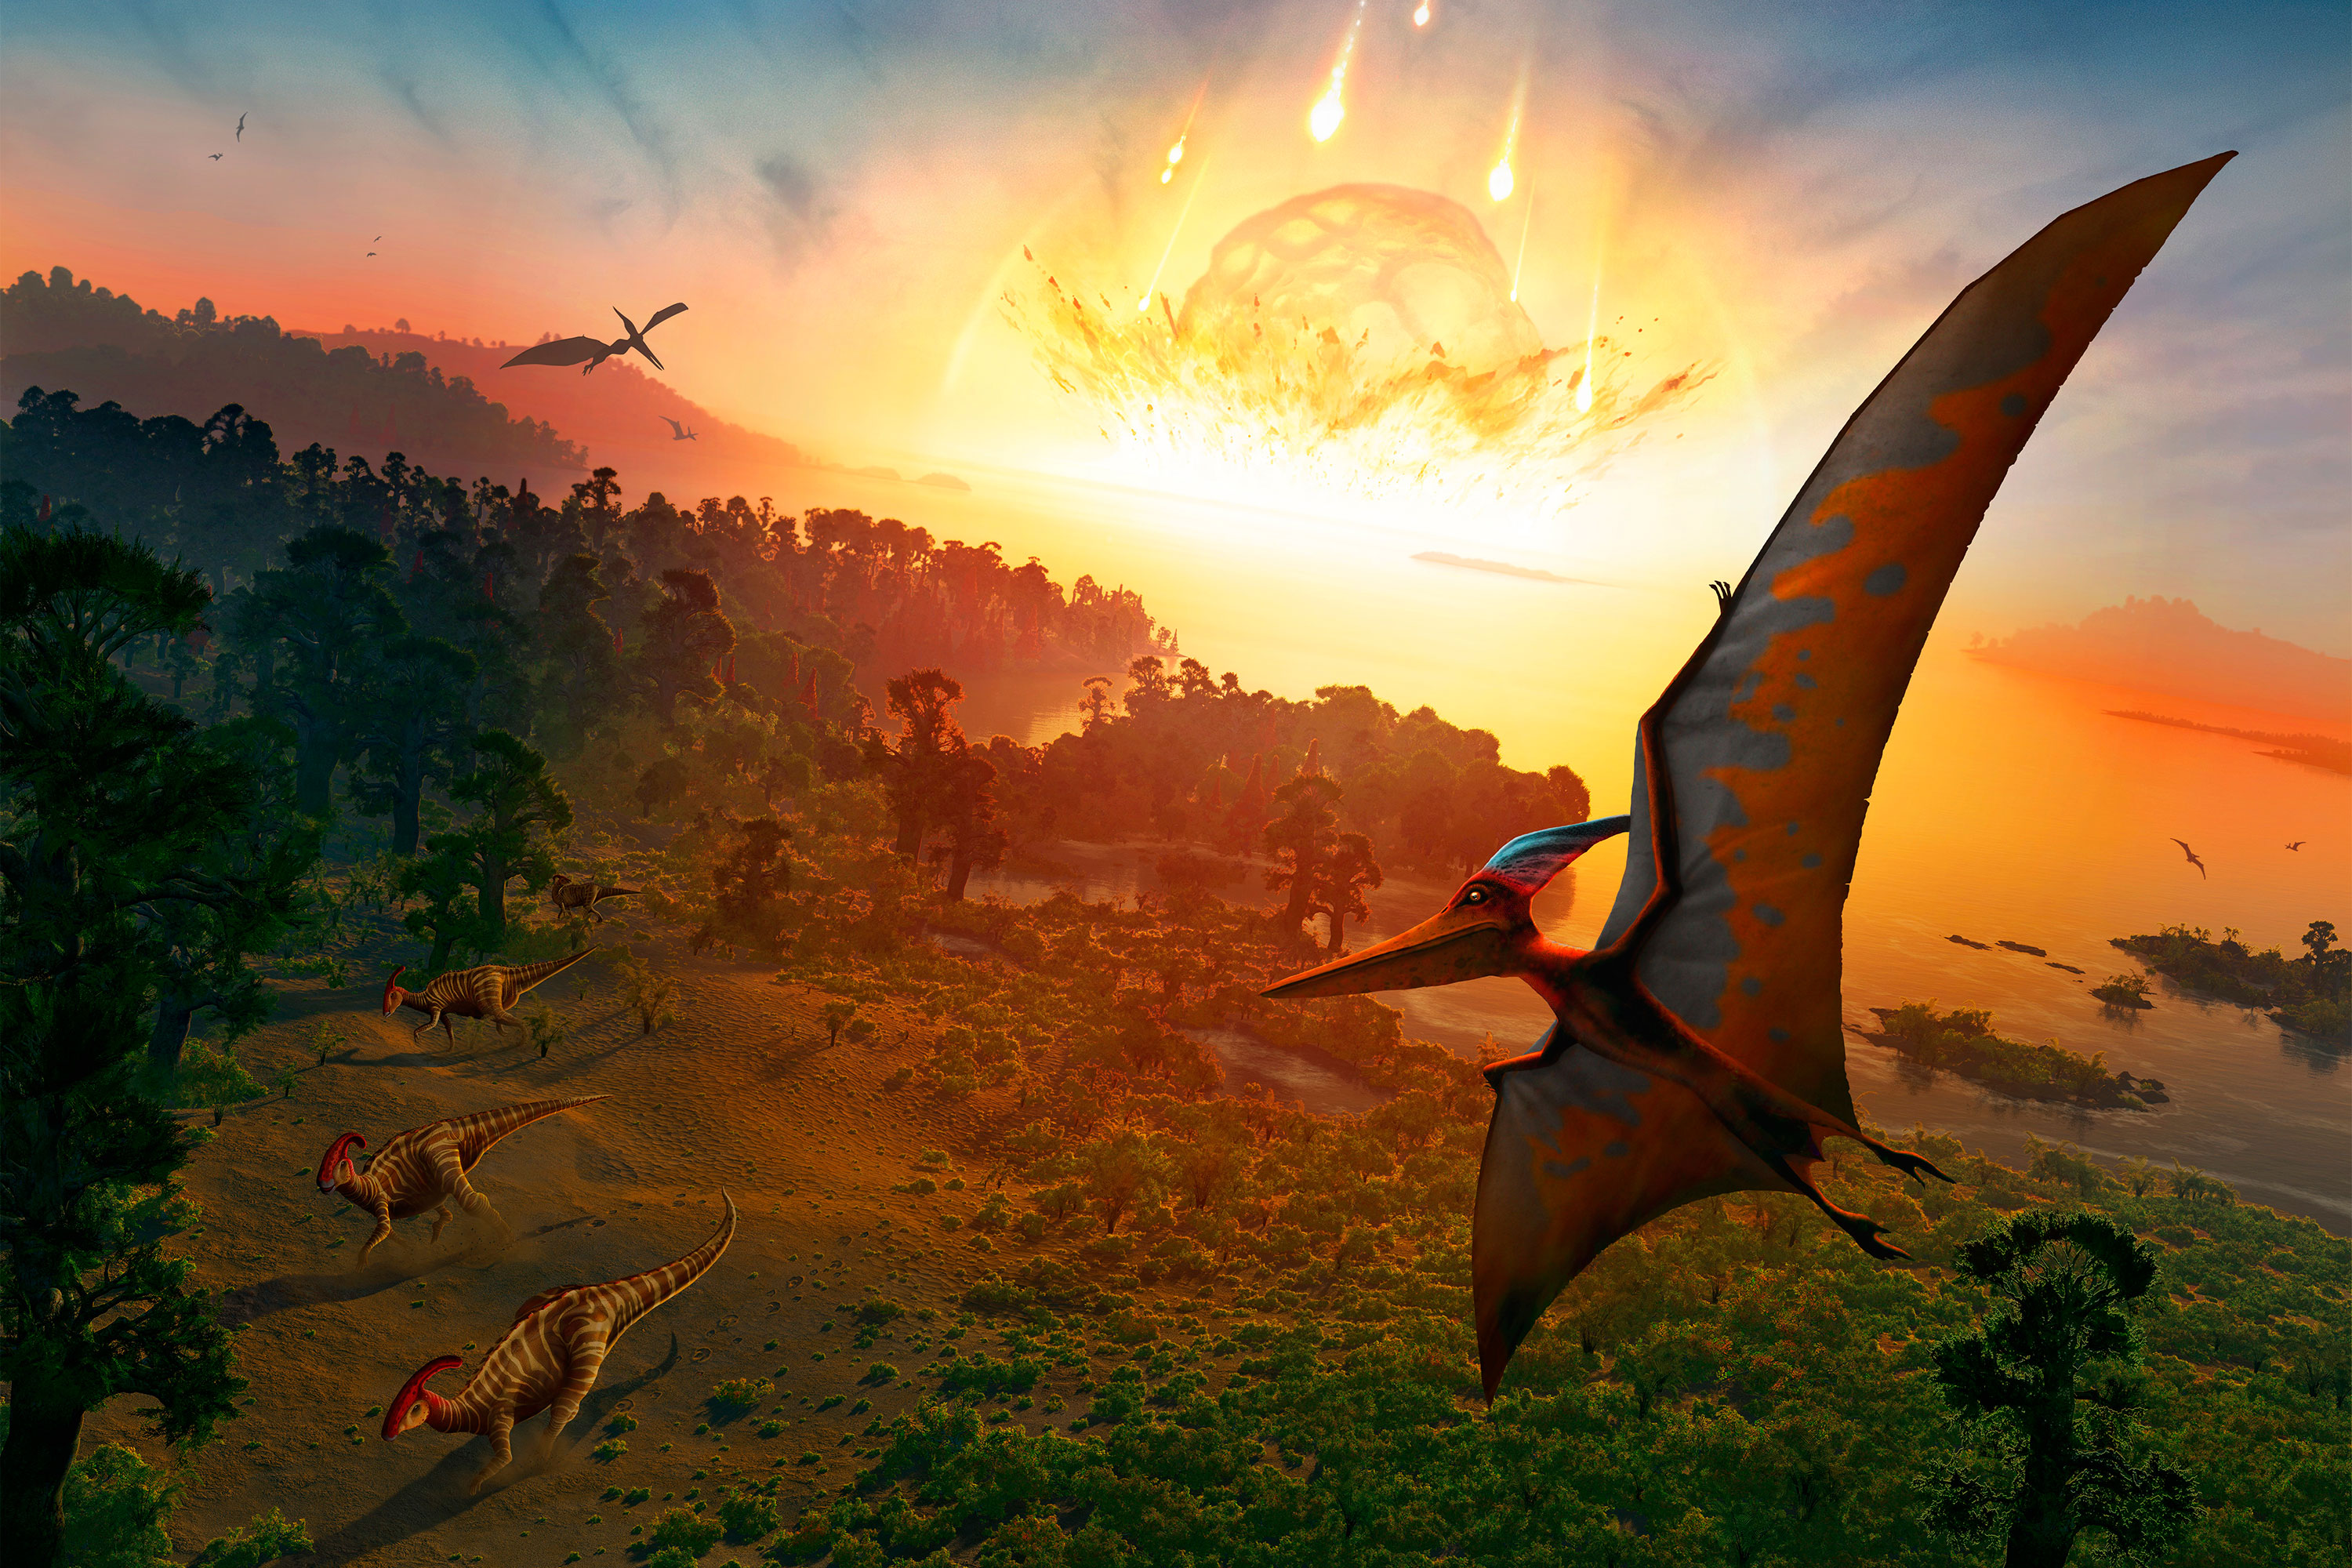 Dinosaurs might have lived if asteroid had hit minutes later